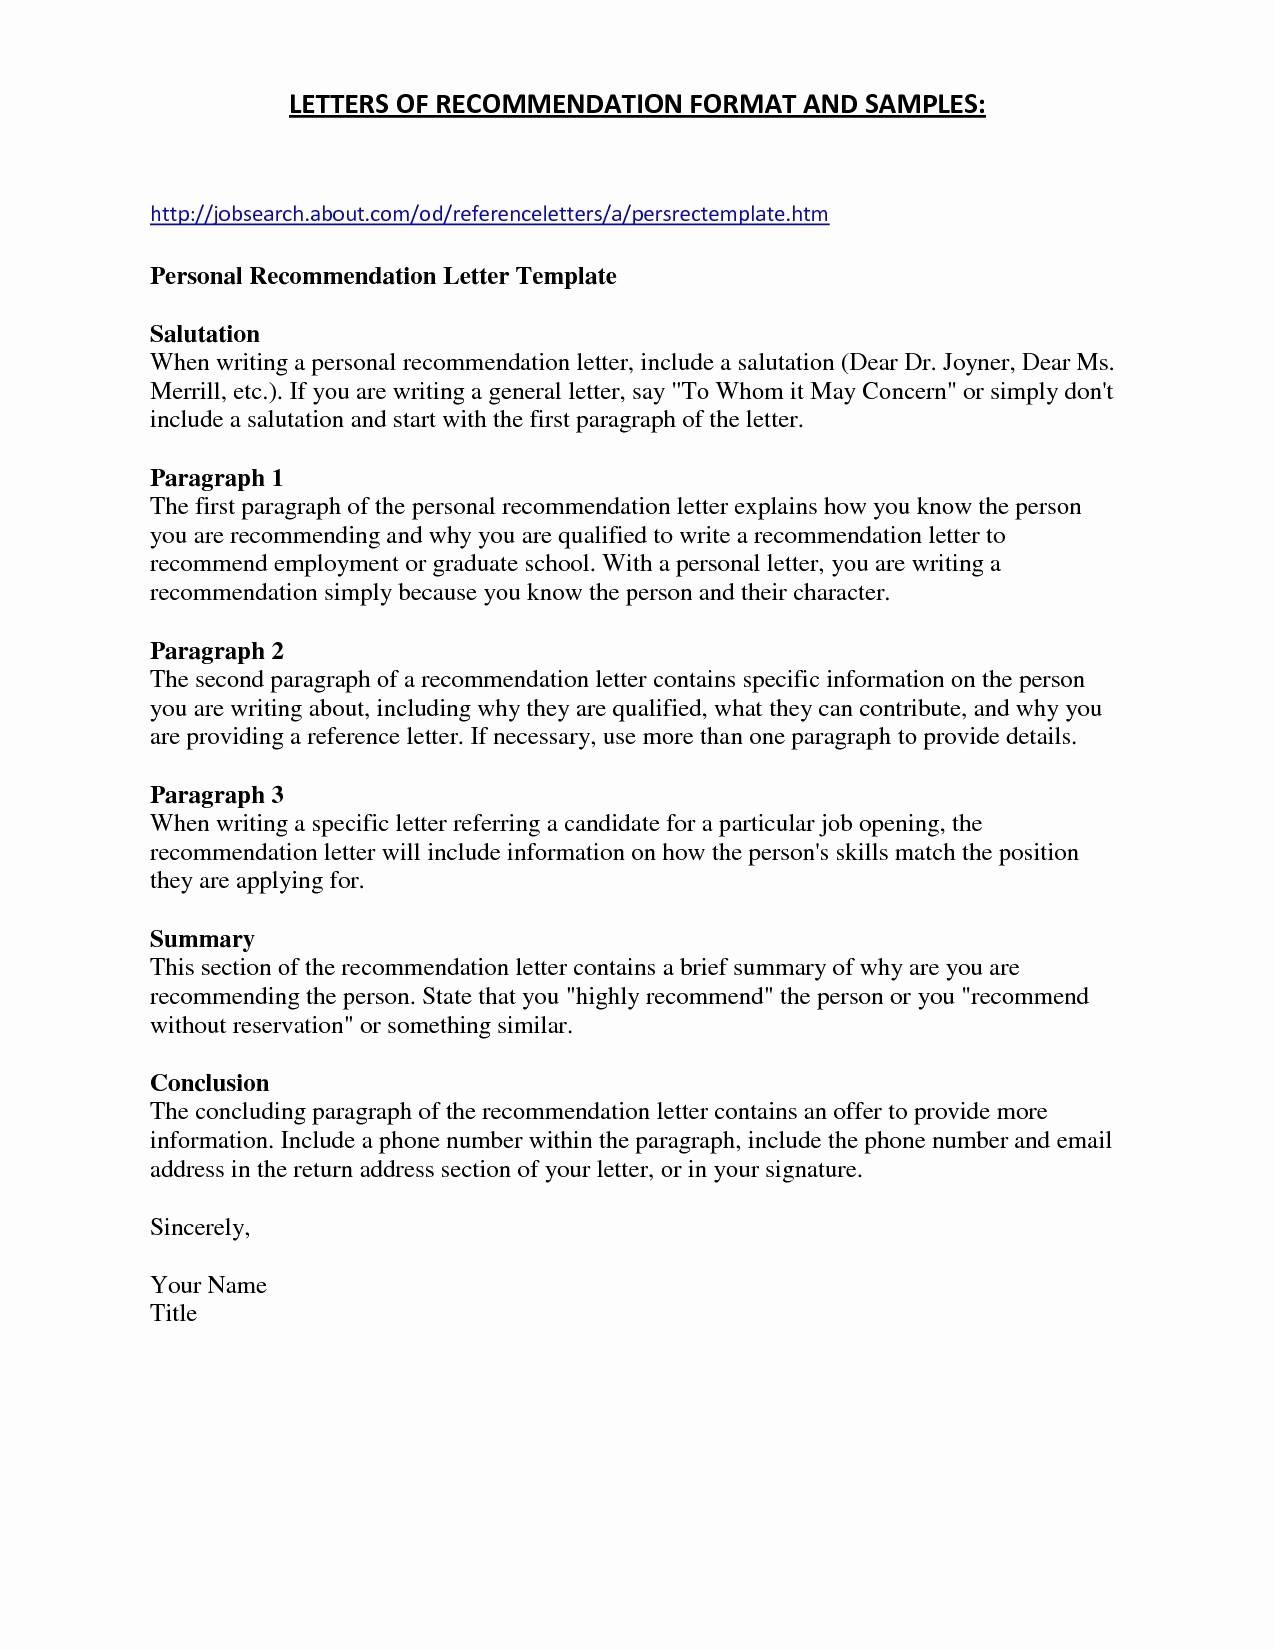 Rent Letter Template - How to Write A Cover Letter for A Rental Application